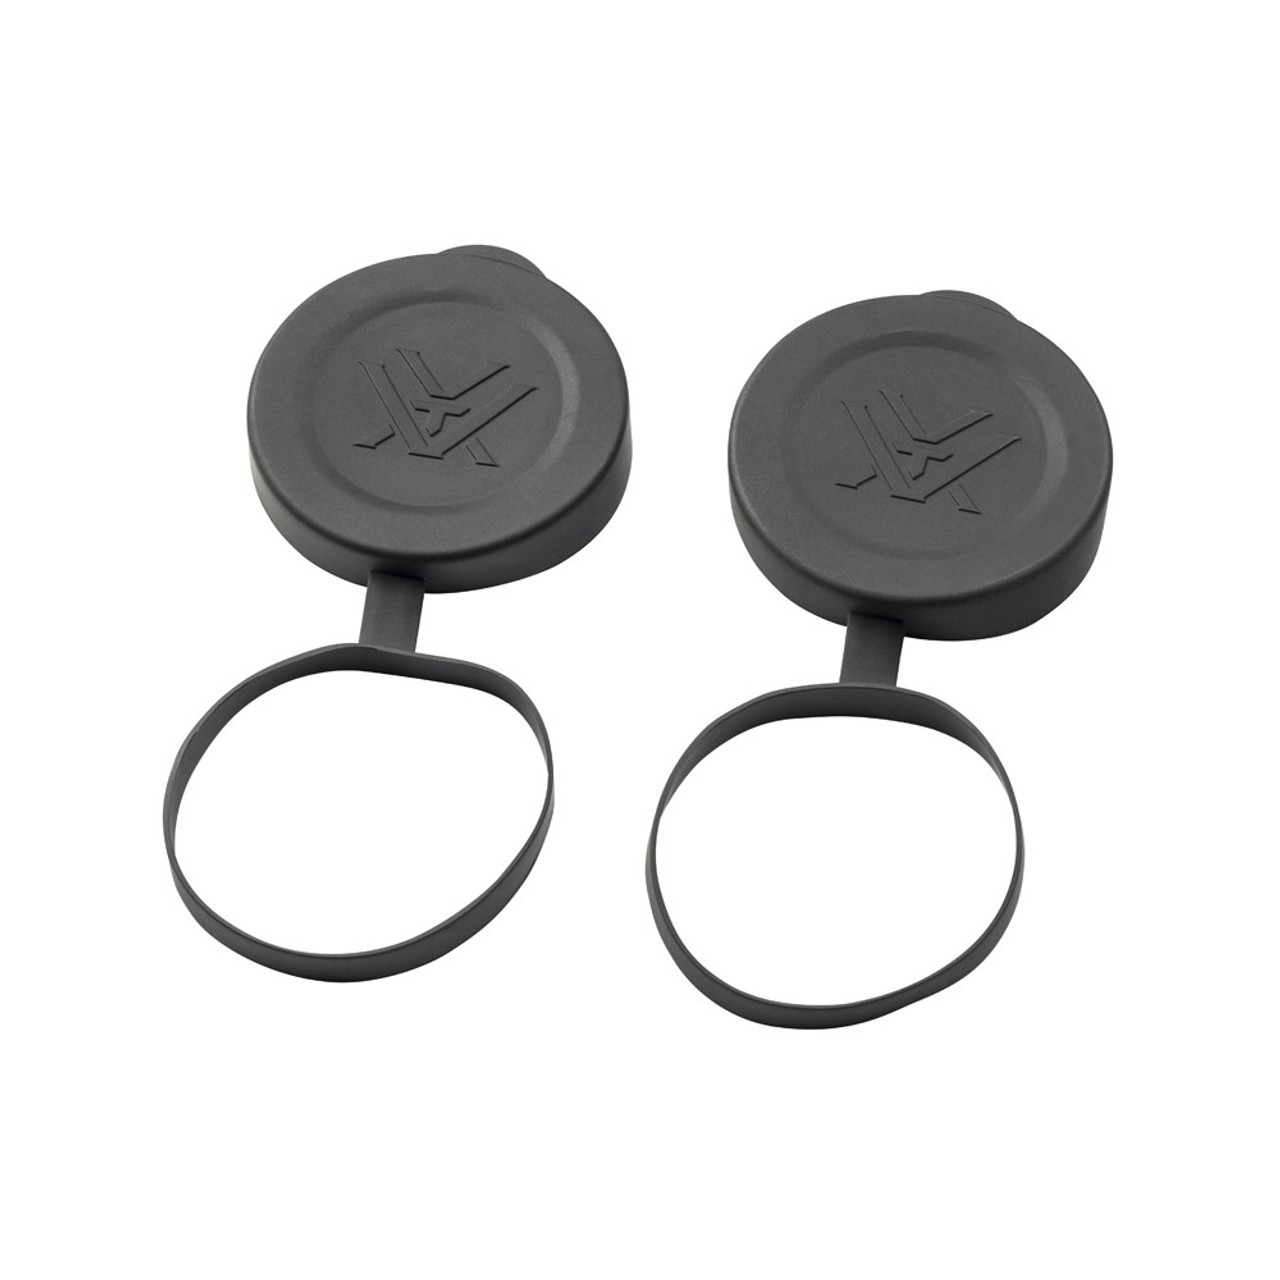 Tethered Objective Lens Caps 42mm Viper